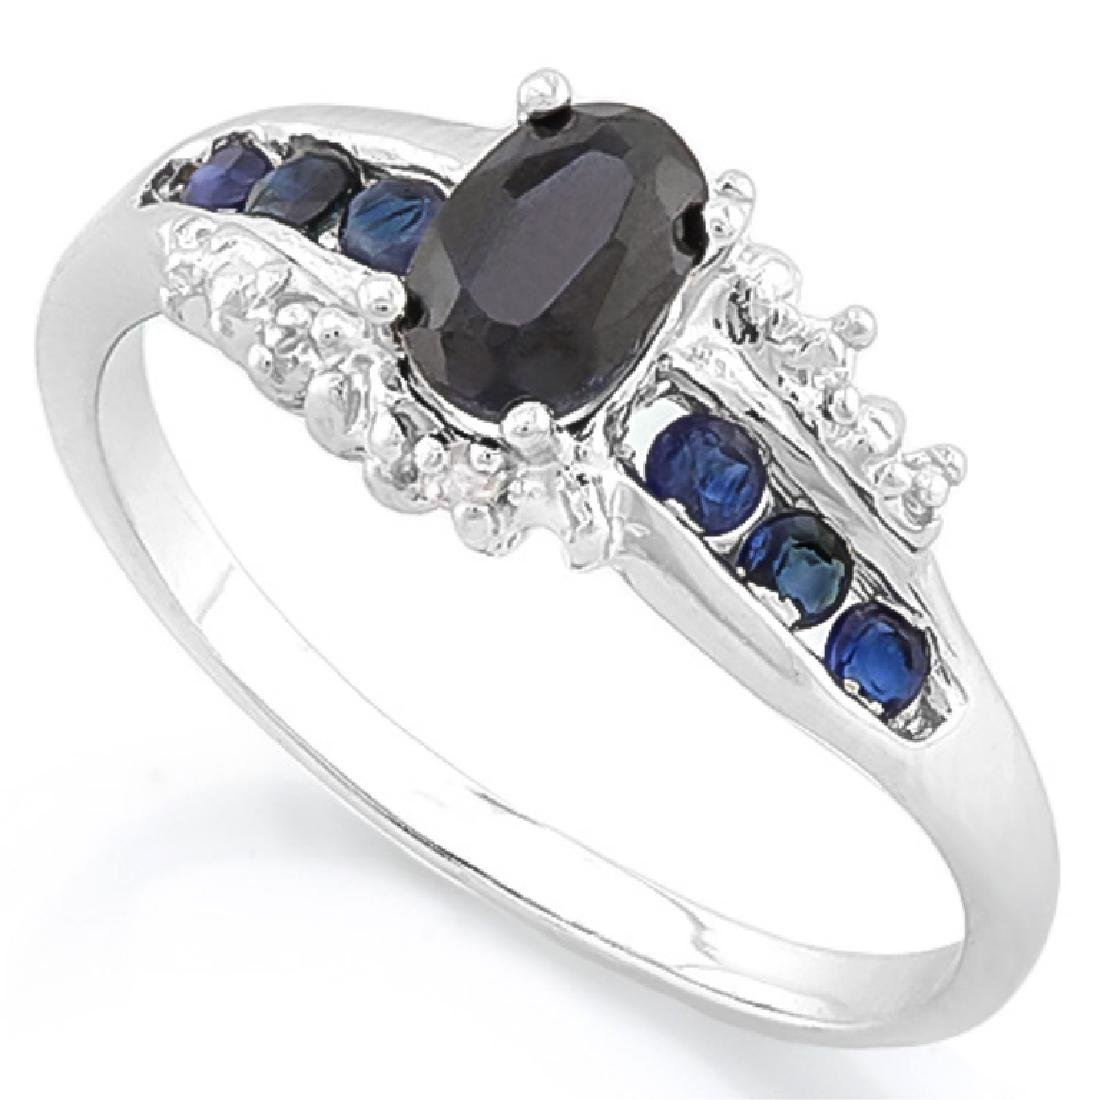 BEAUTIFUL BLACK SAPPHIRE ART DECO STERLING RING